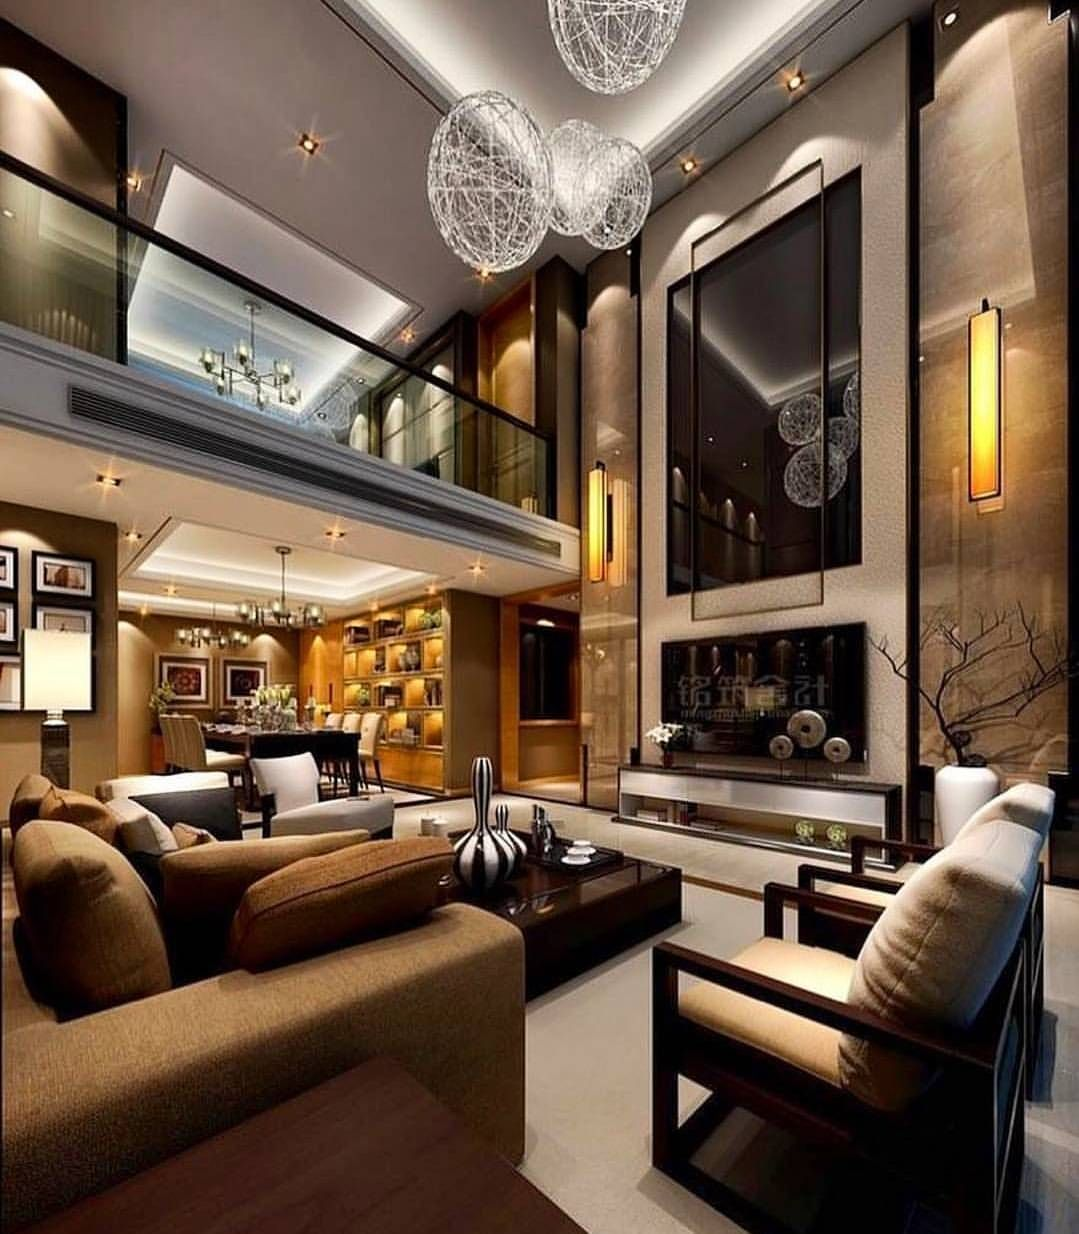 Luxury High Ceilings Rate It 1 10 Like Or Comment